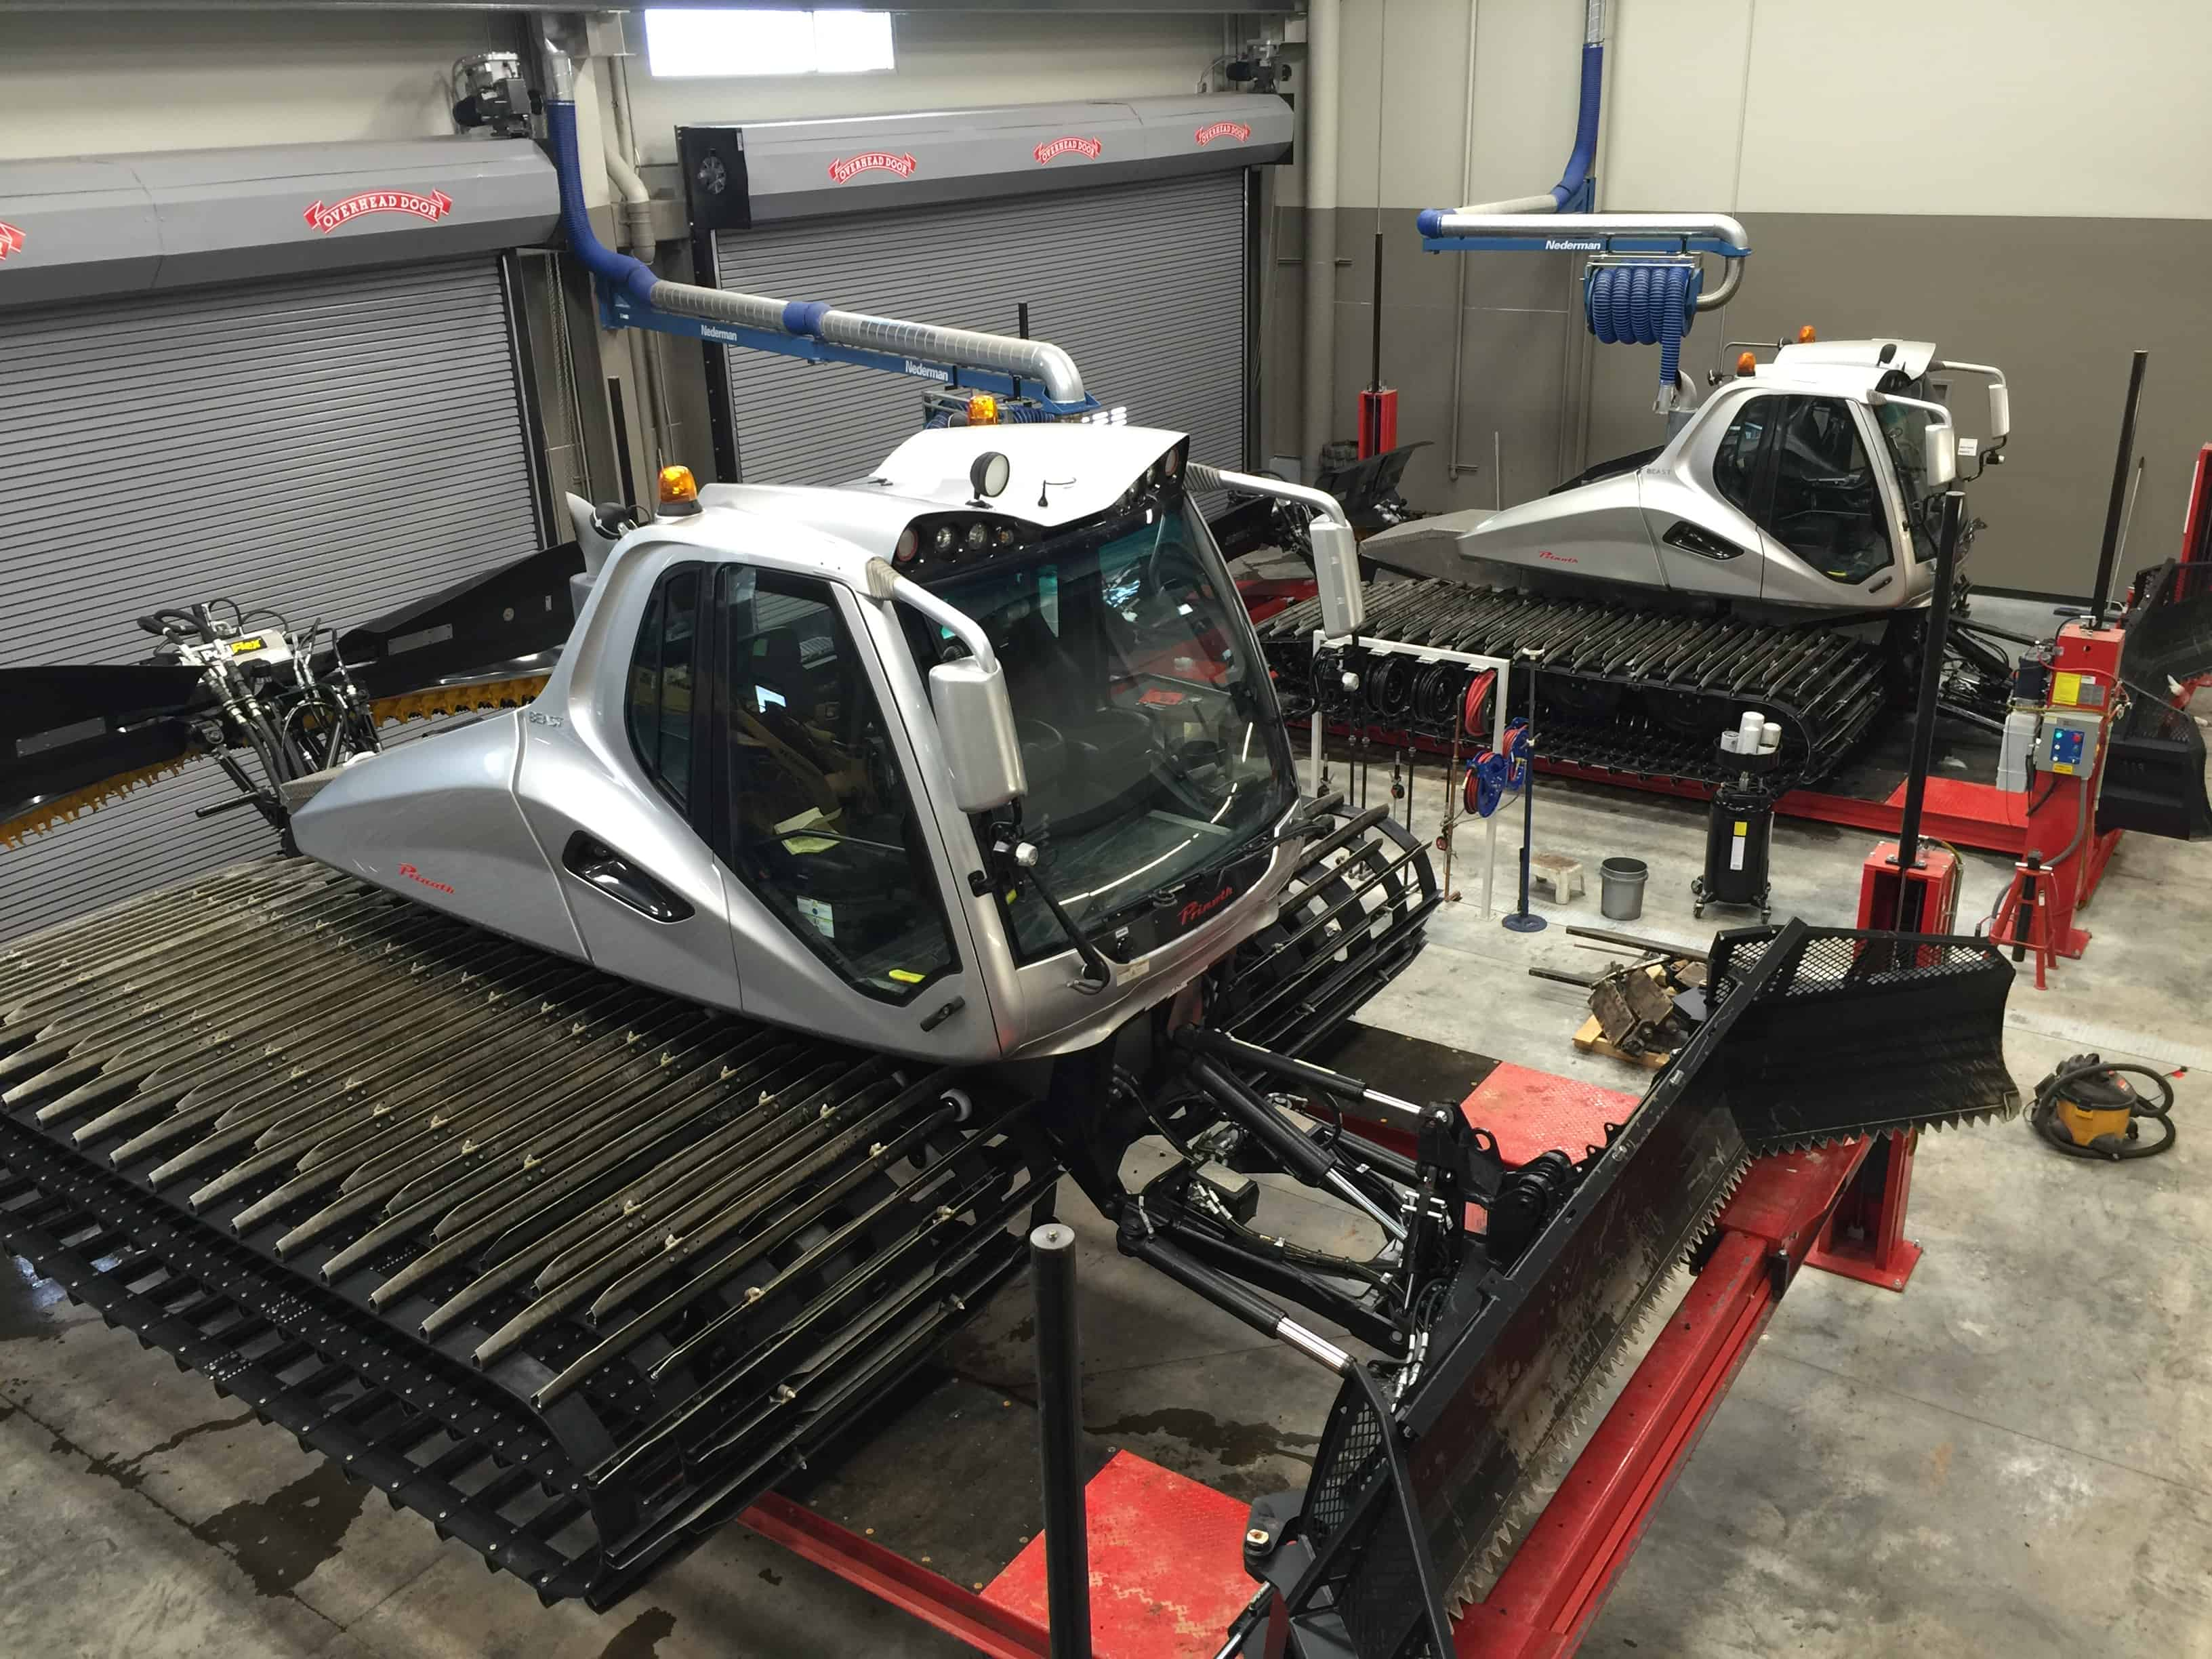 Two PRINOTH BEASTS, ready for maintenance.